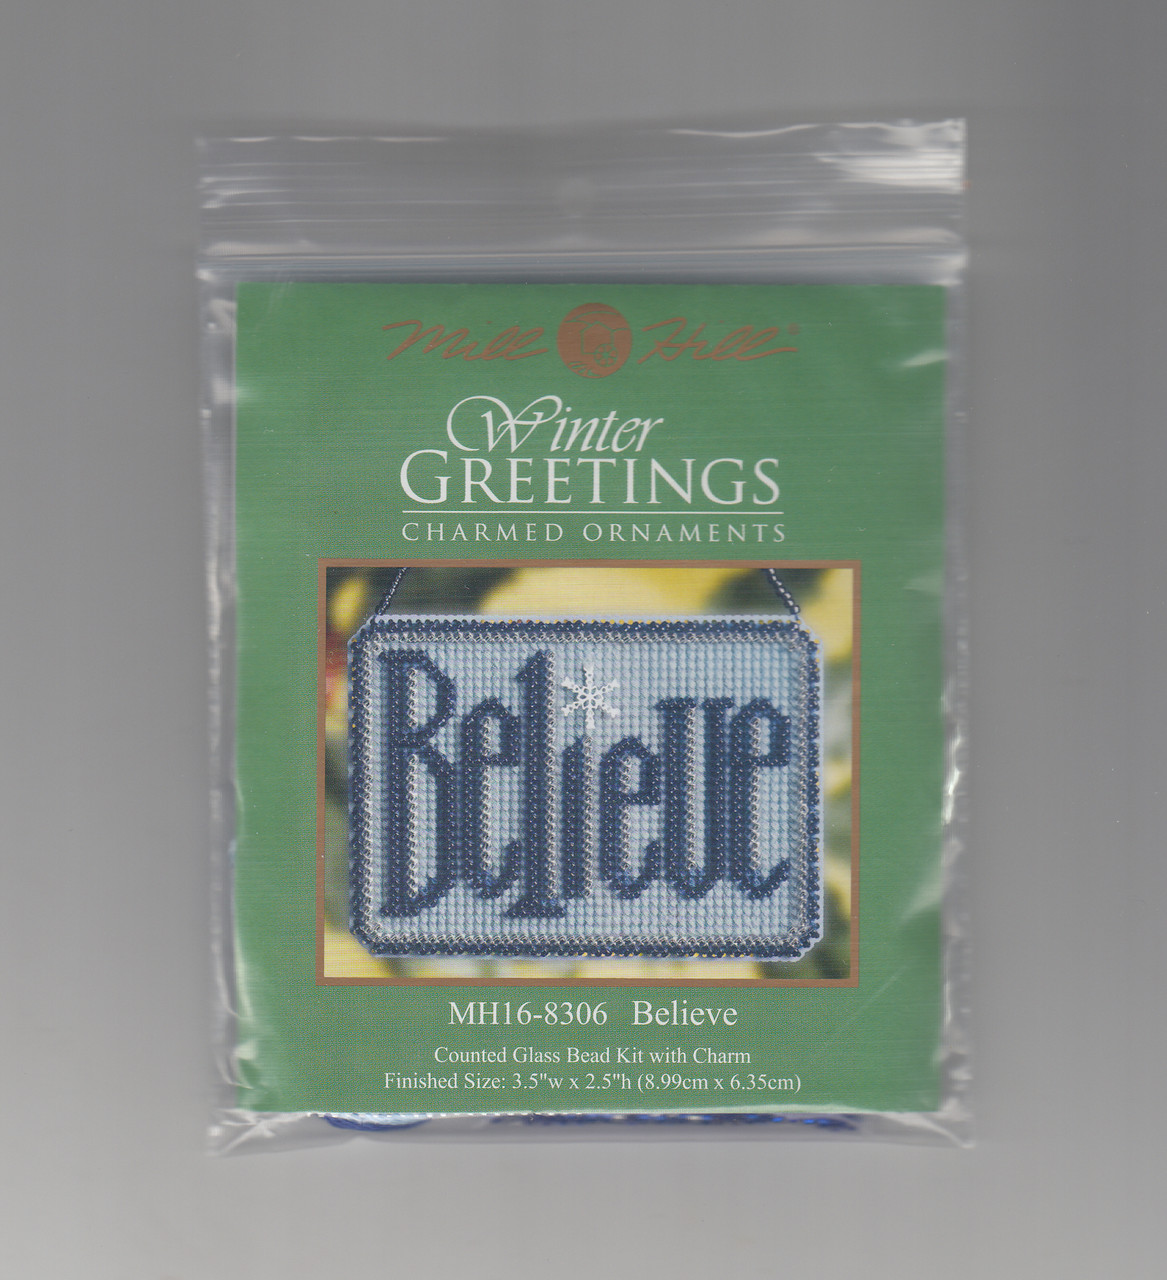 Mill Hill 2008 Winter Greetings Charmed Ornament - Believe